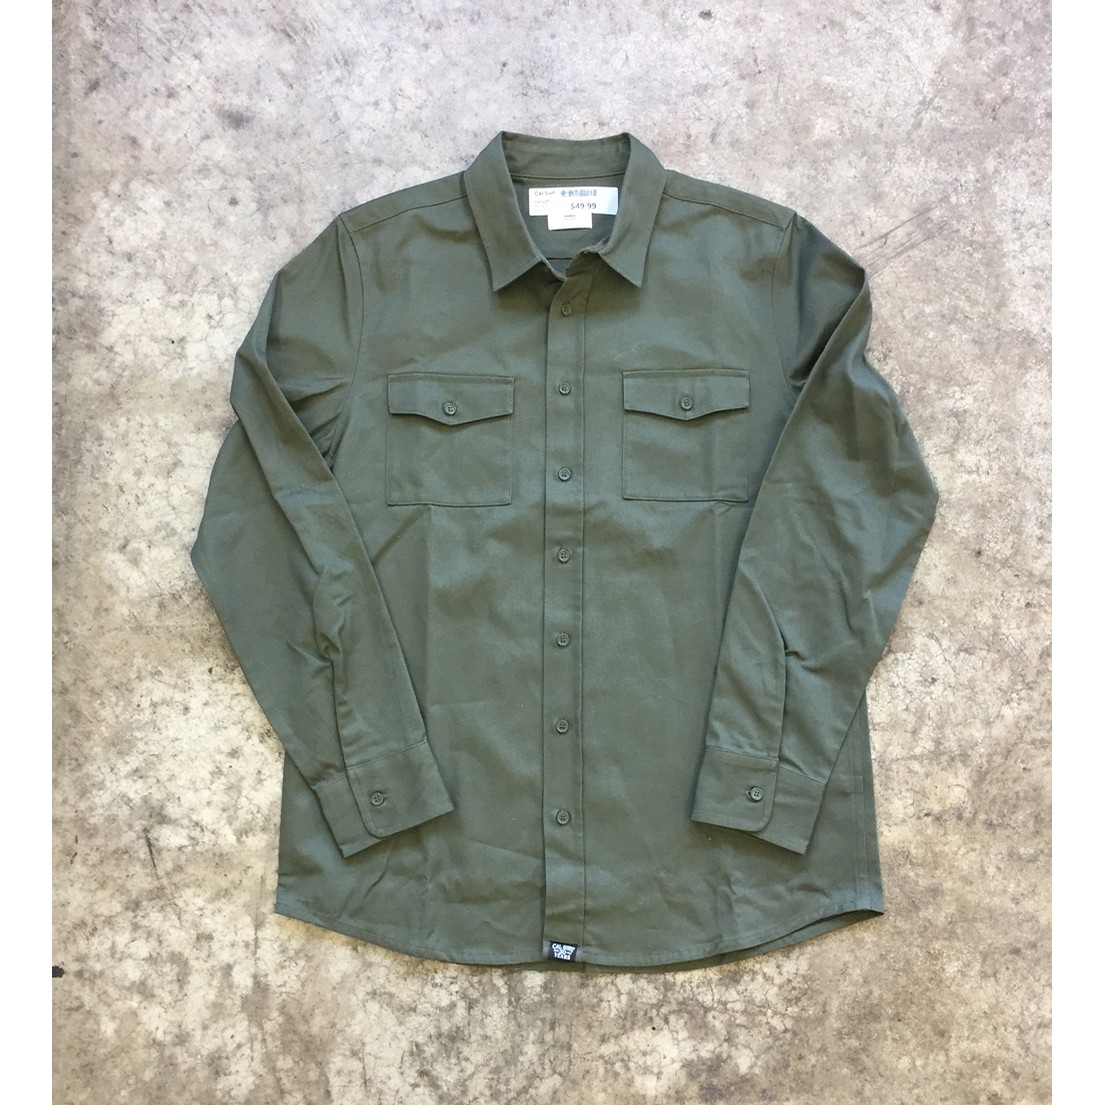 Military LS (Army)